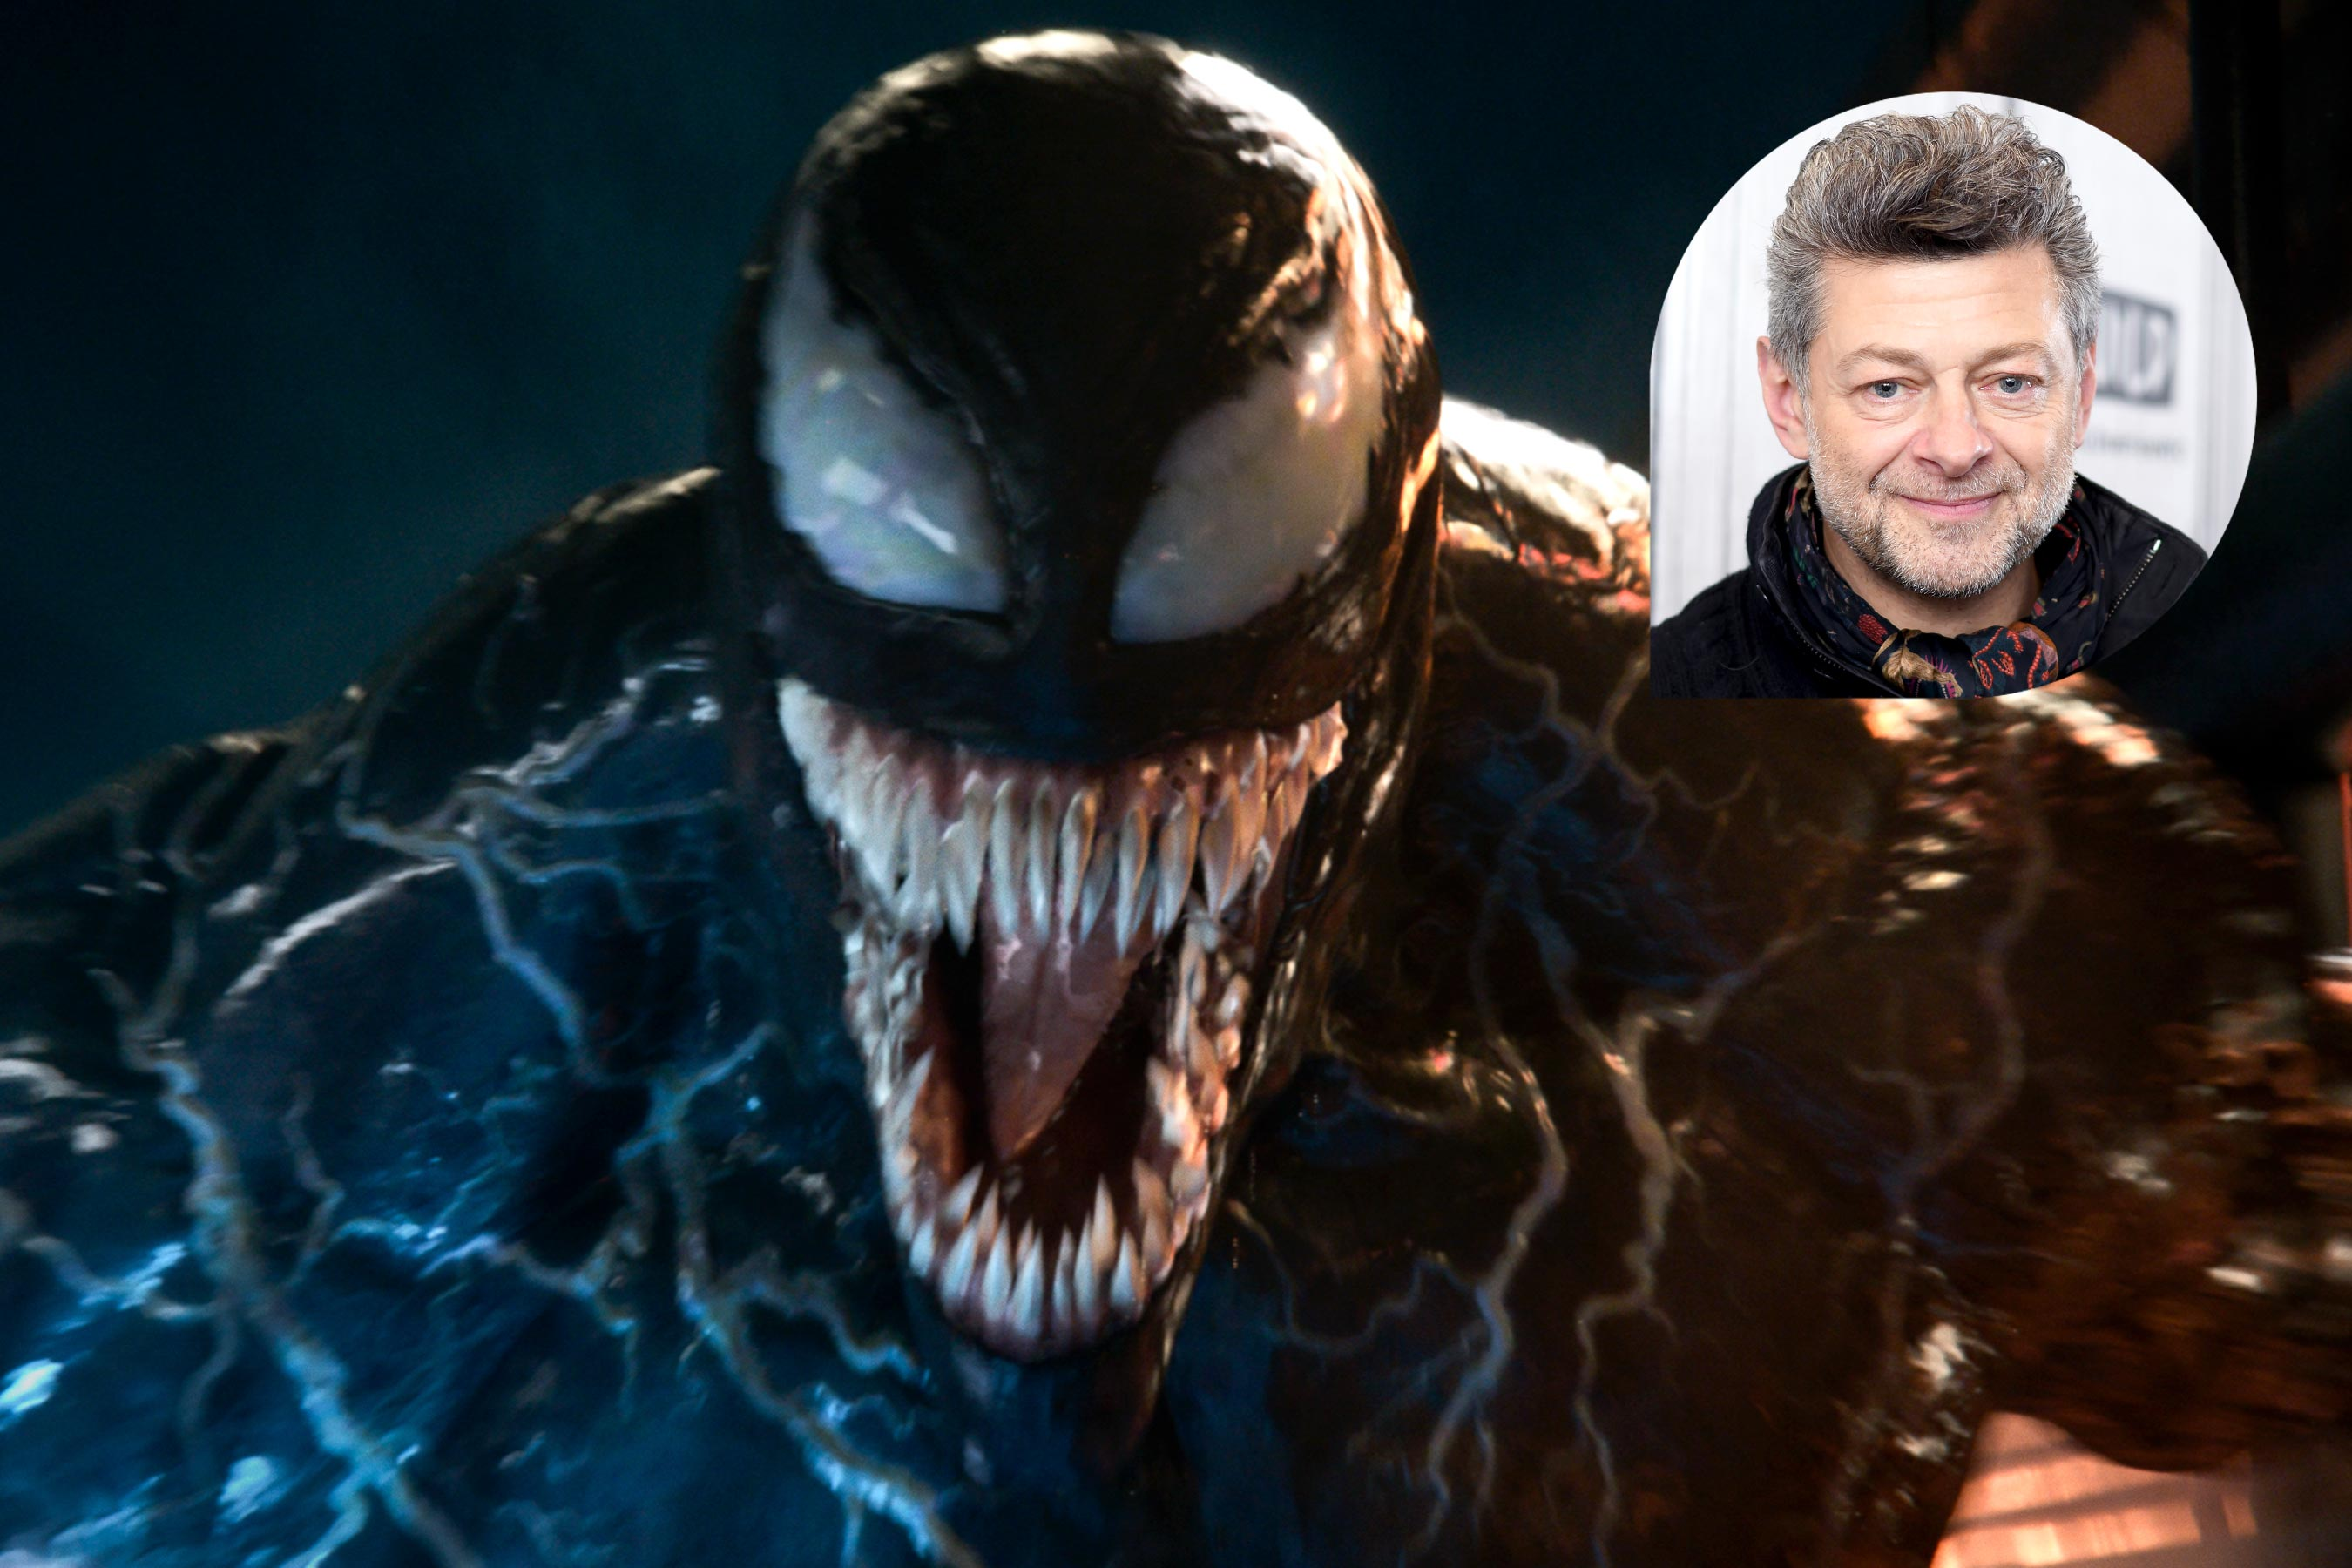 Andy Serkis to direct Tom Hardy in Venomsequel